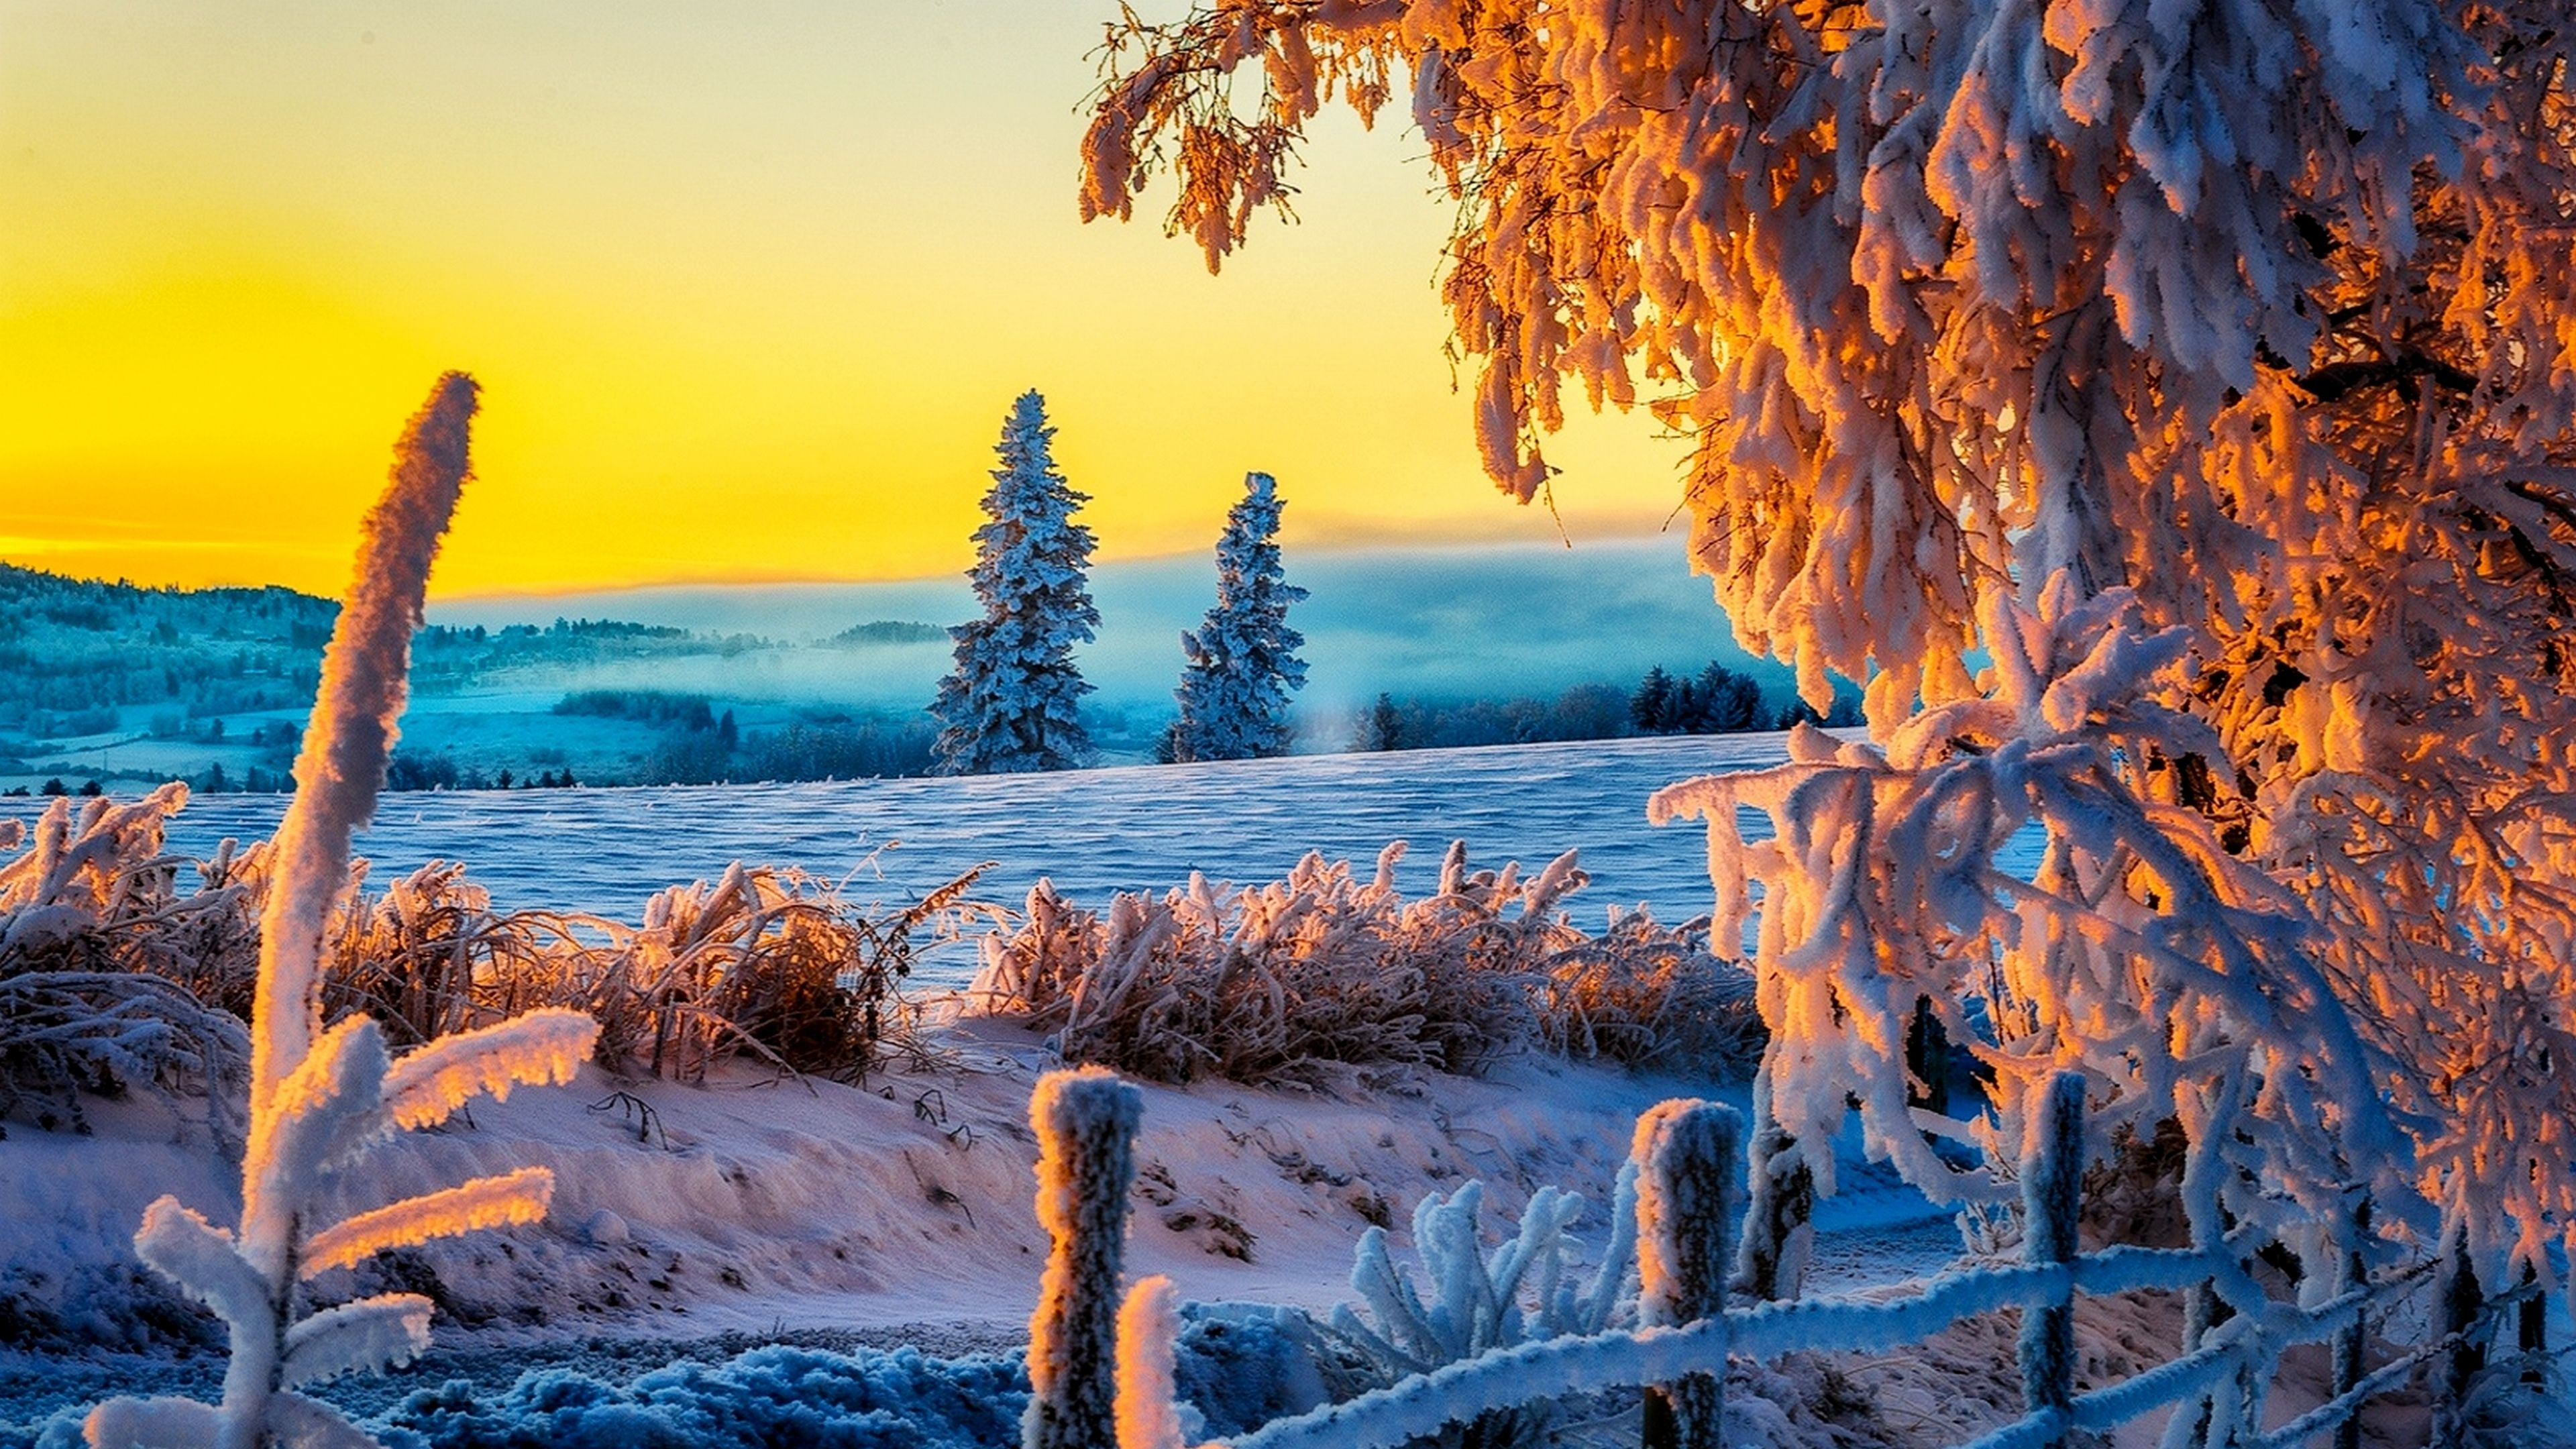 4k Nature Wallpaper Winter France: 4k Backgrounds Is Cool Wallpapers